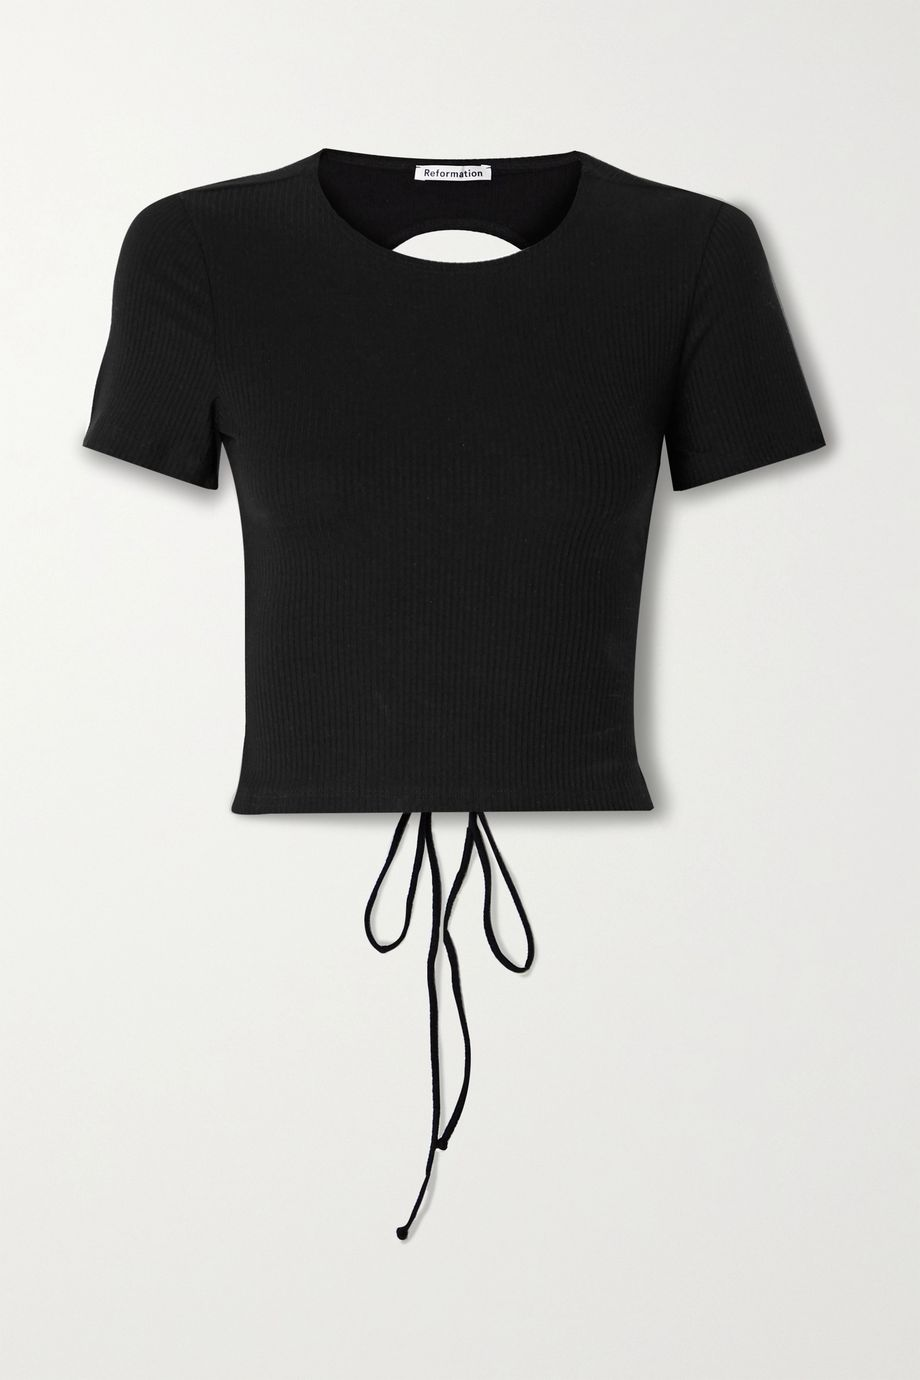 Reformation Open-back ribbed stretch-Tencel top